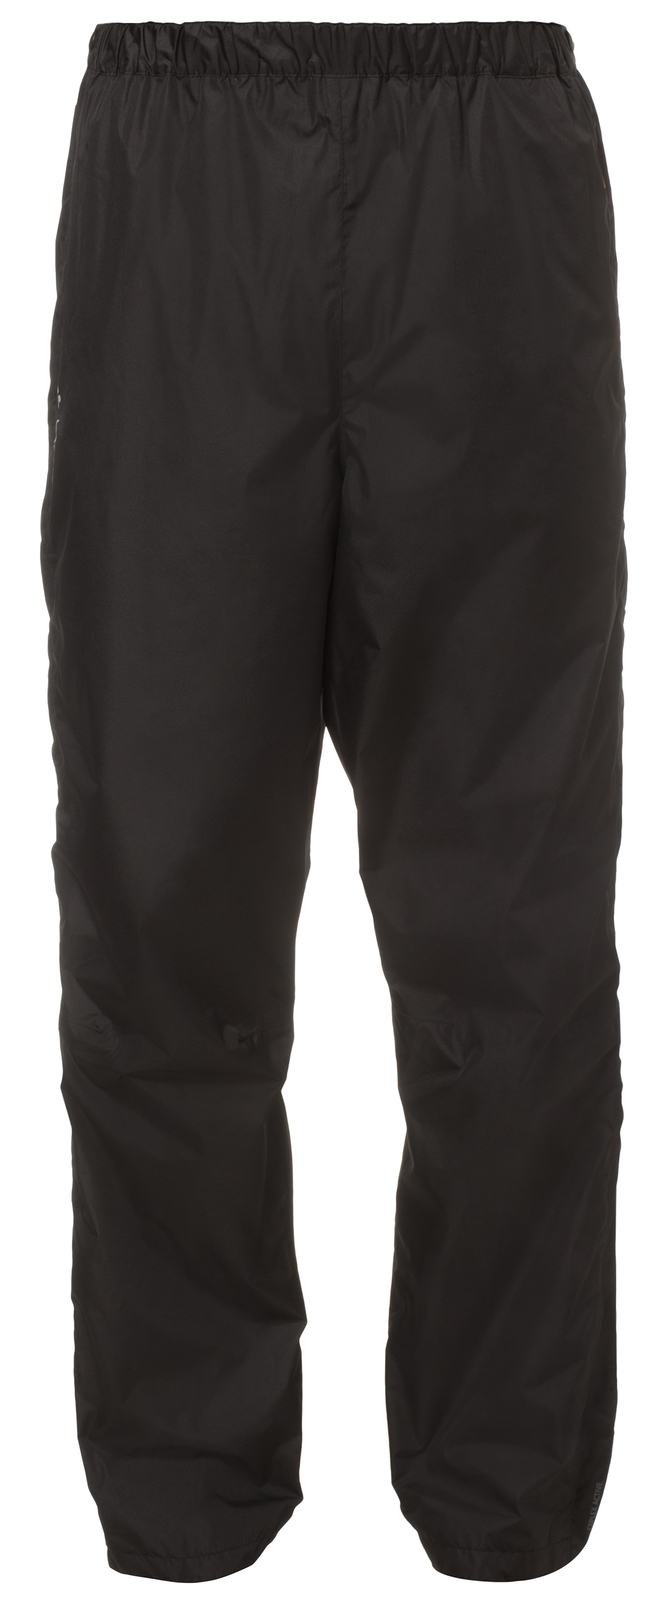 VAUDE Men´s Fluid Full-zip Pants II black Größe XXL - schneider-sports